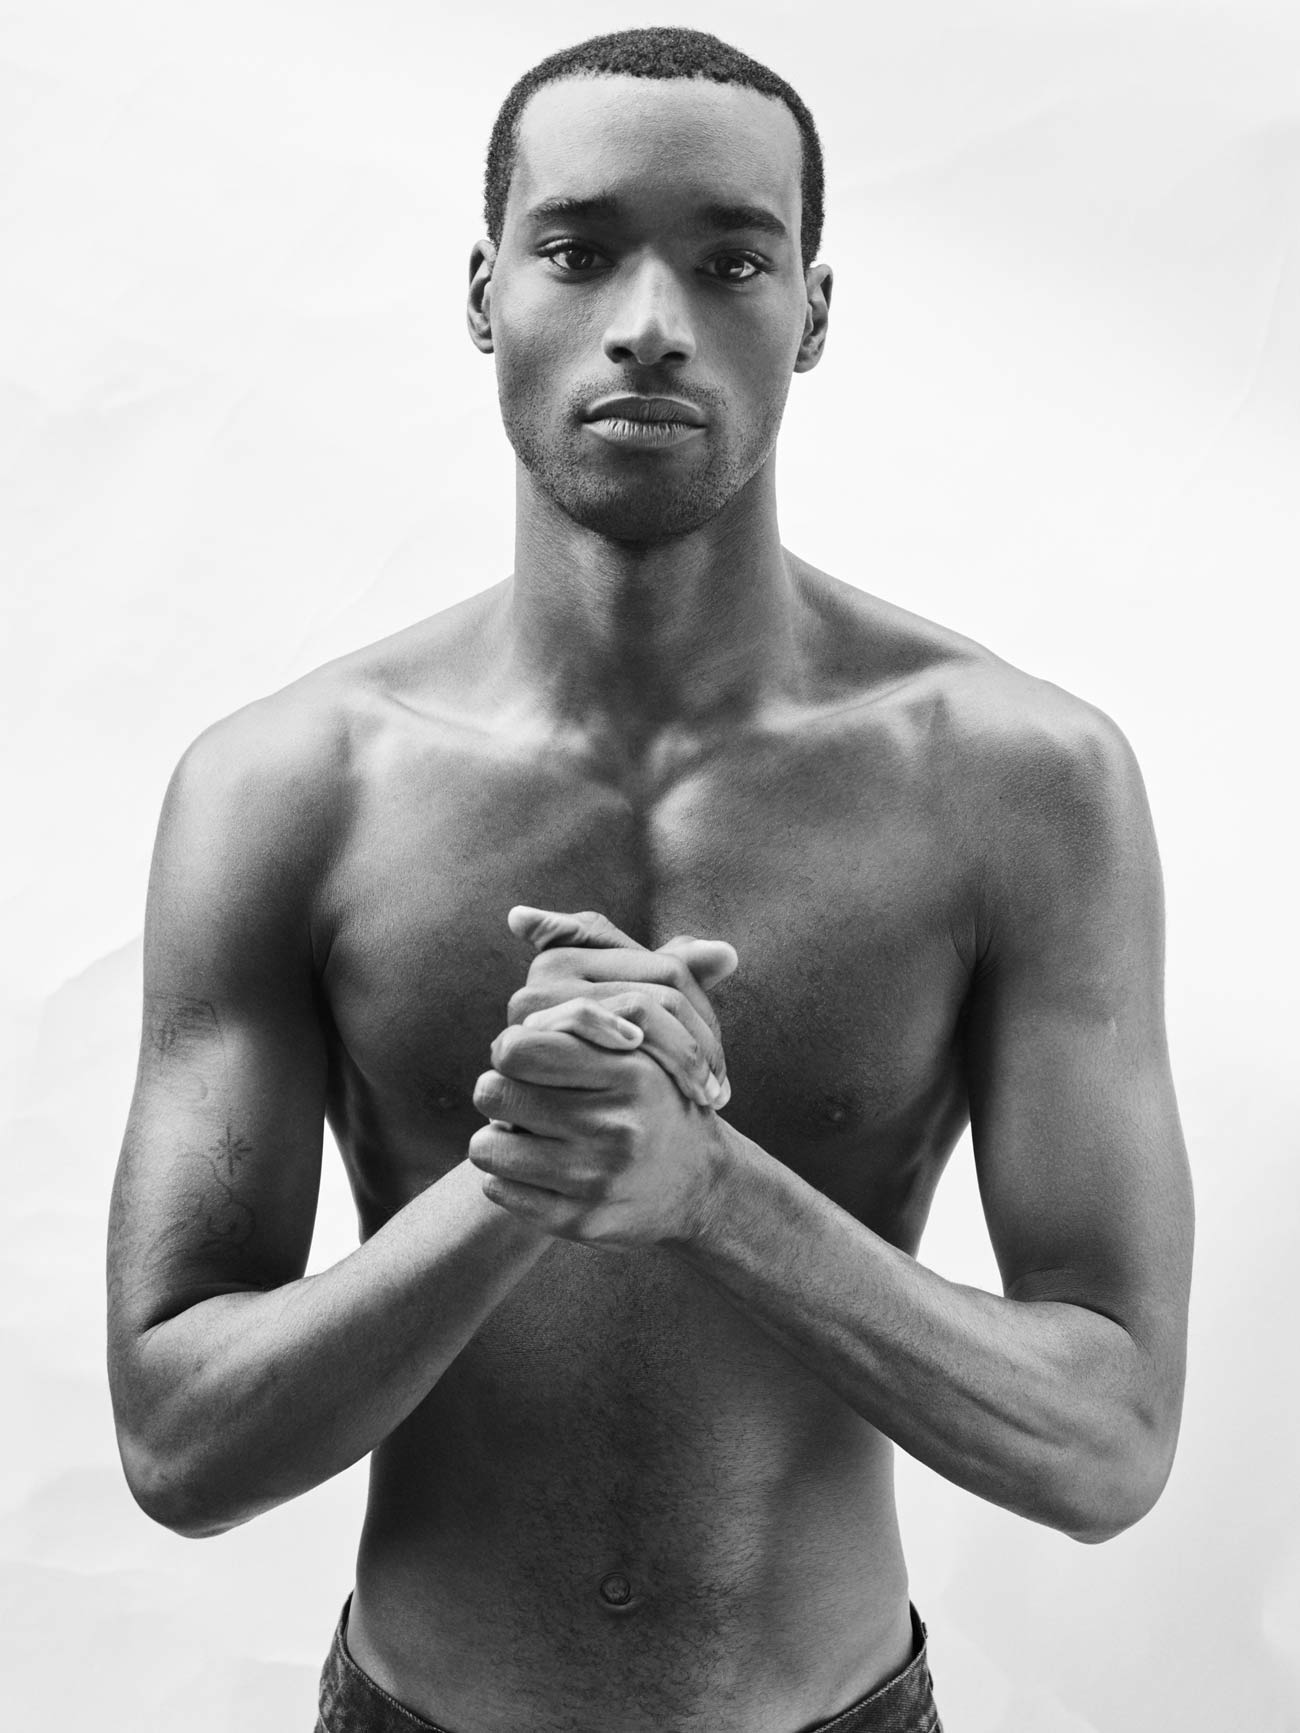 Corey baptiste by tomas hein top black male model story for sagaboi and sagaboi